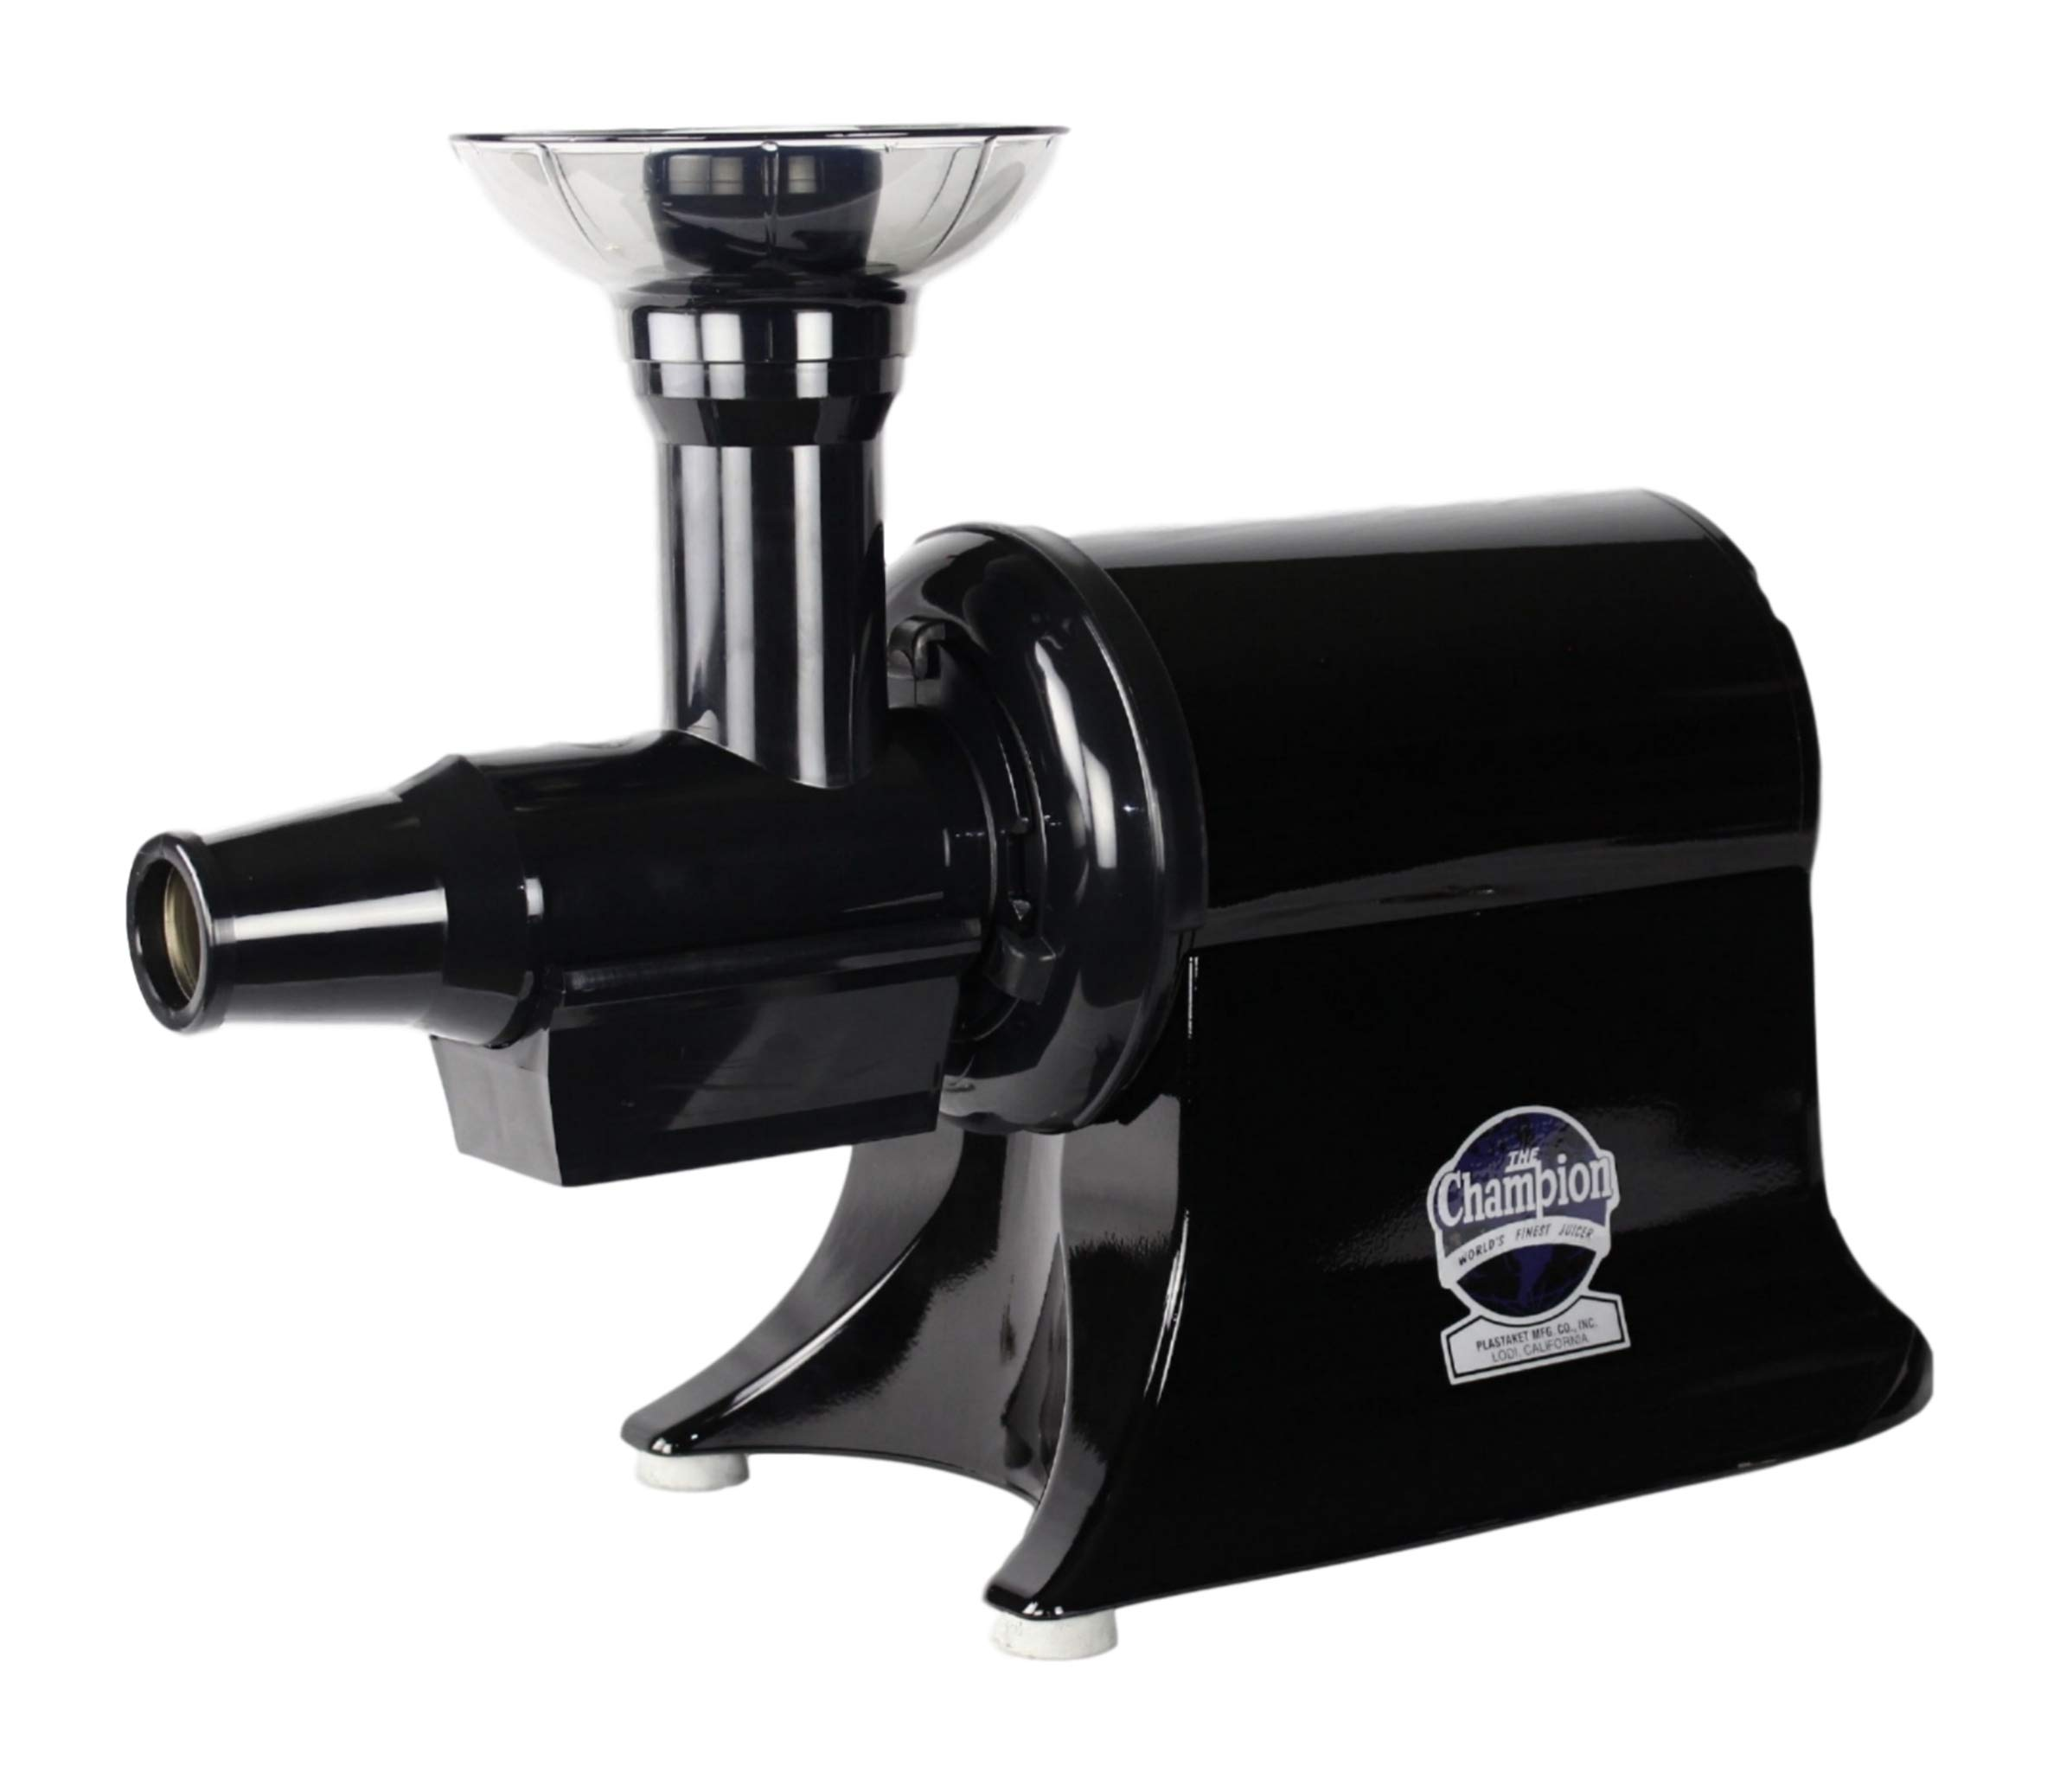 Champion Juicer - Commercial Heavy Duty Juicer - Black - G5- PG710 by Champion Juicer